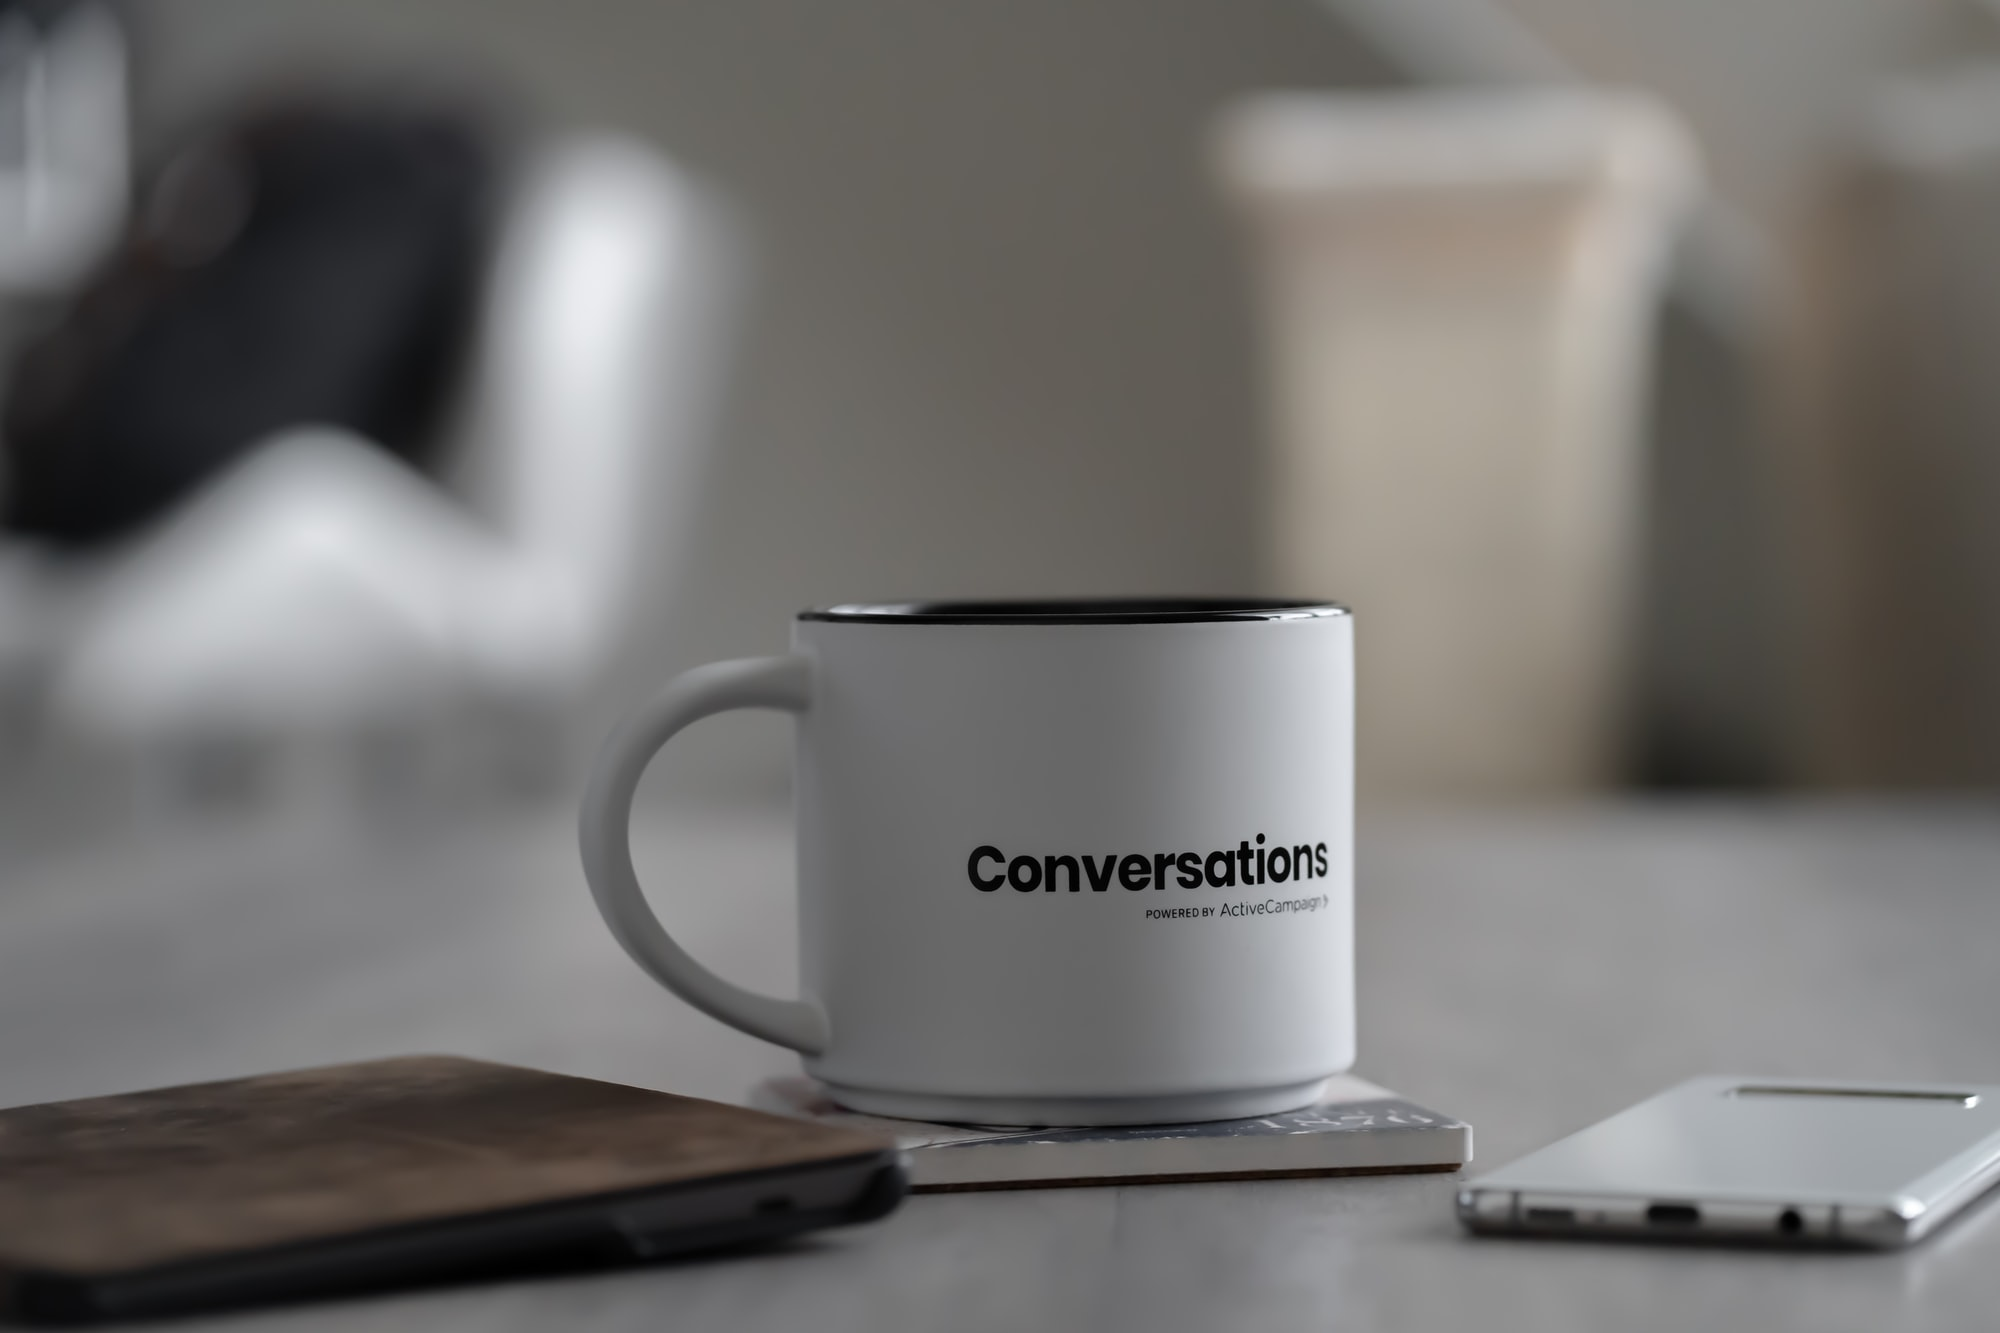 Just a picture of my Conversations mug I received from ActiveCampaign for working on the Android app. Also featured is my Kindle and phone.